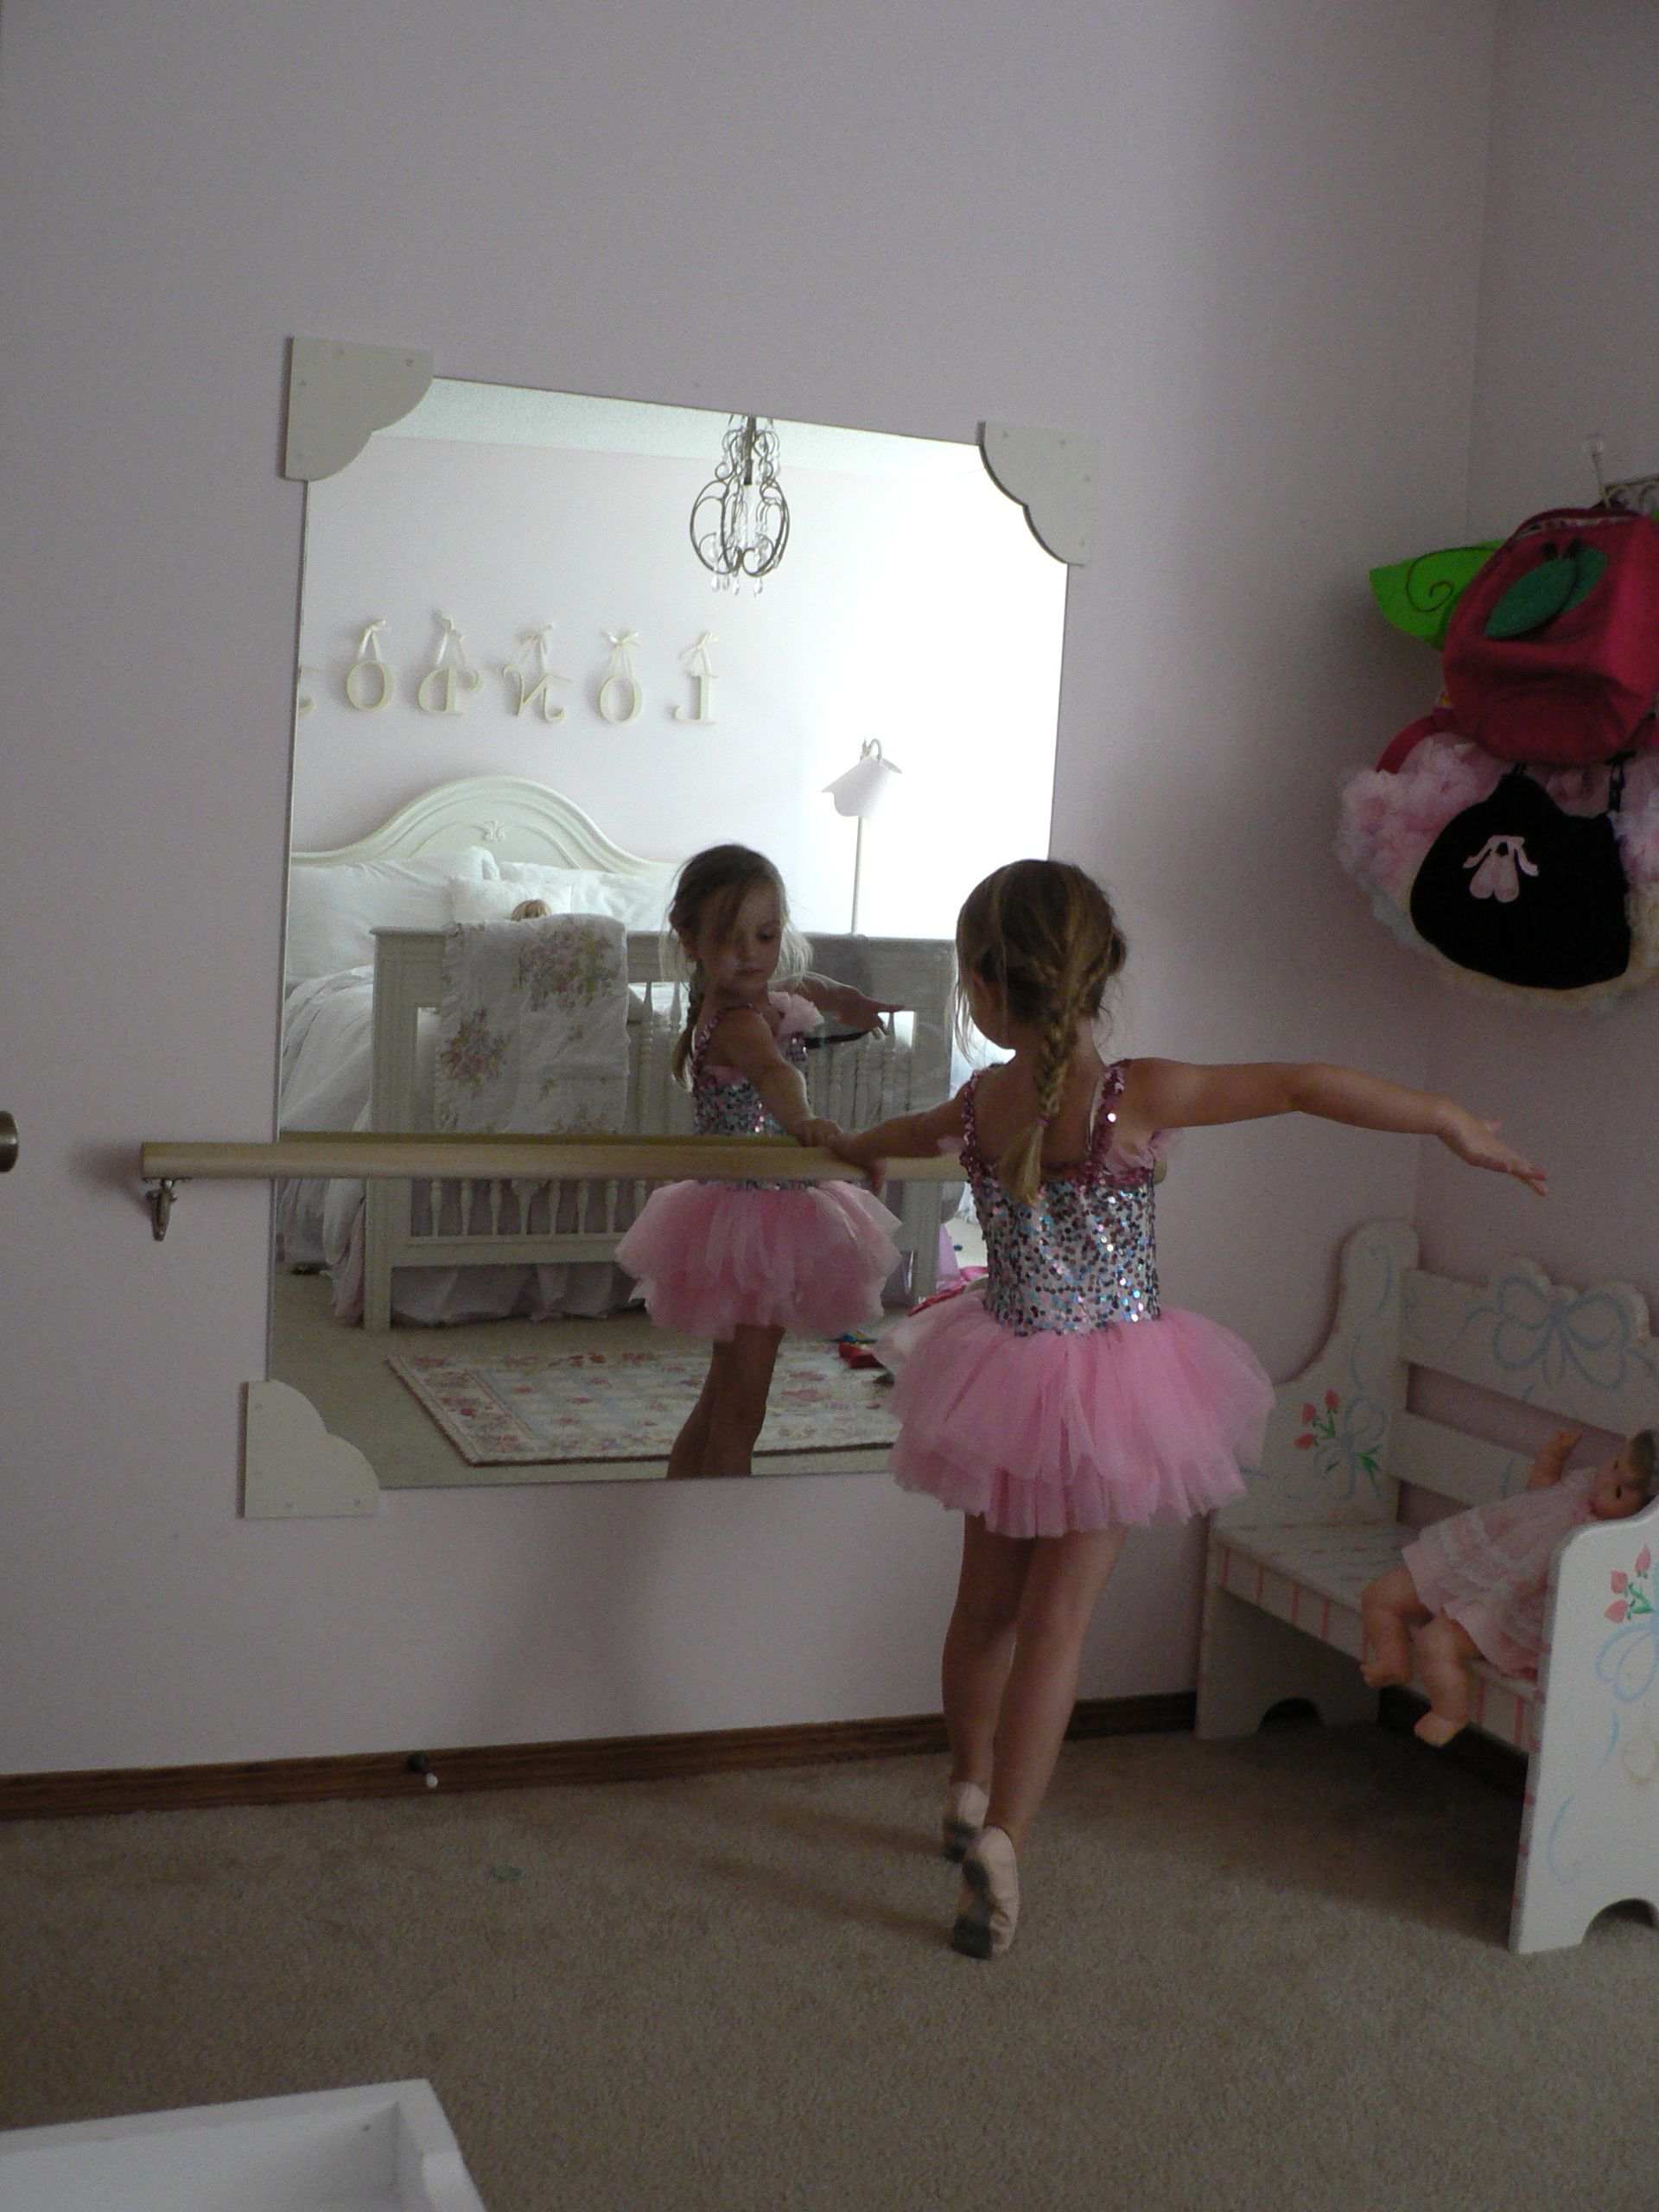 This would be cool in a little girl's room (or a playroom) Ballet bar